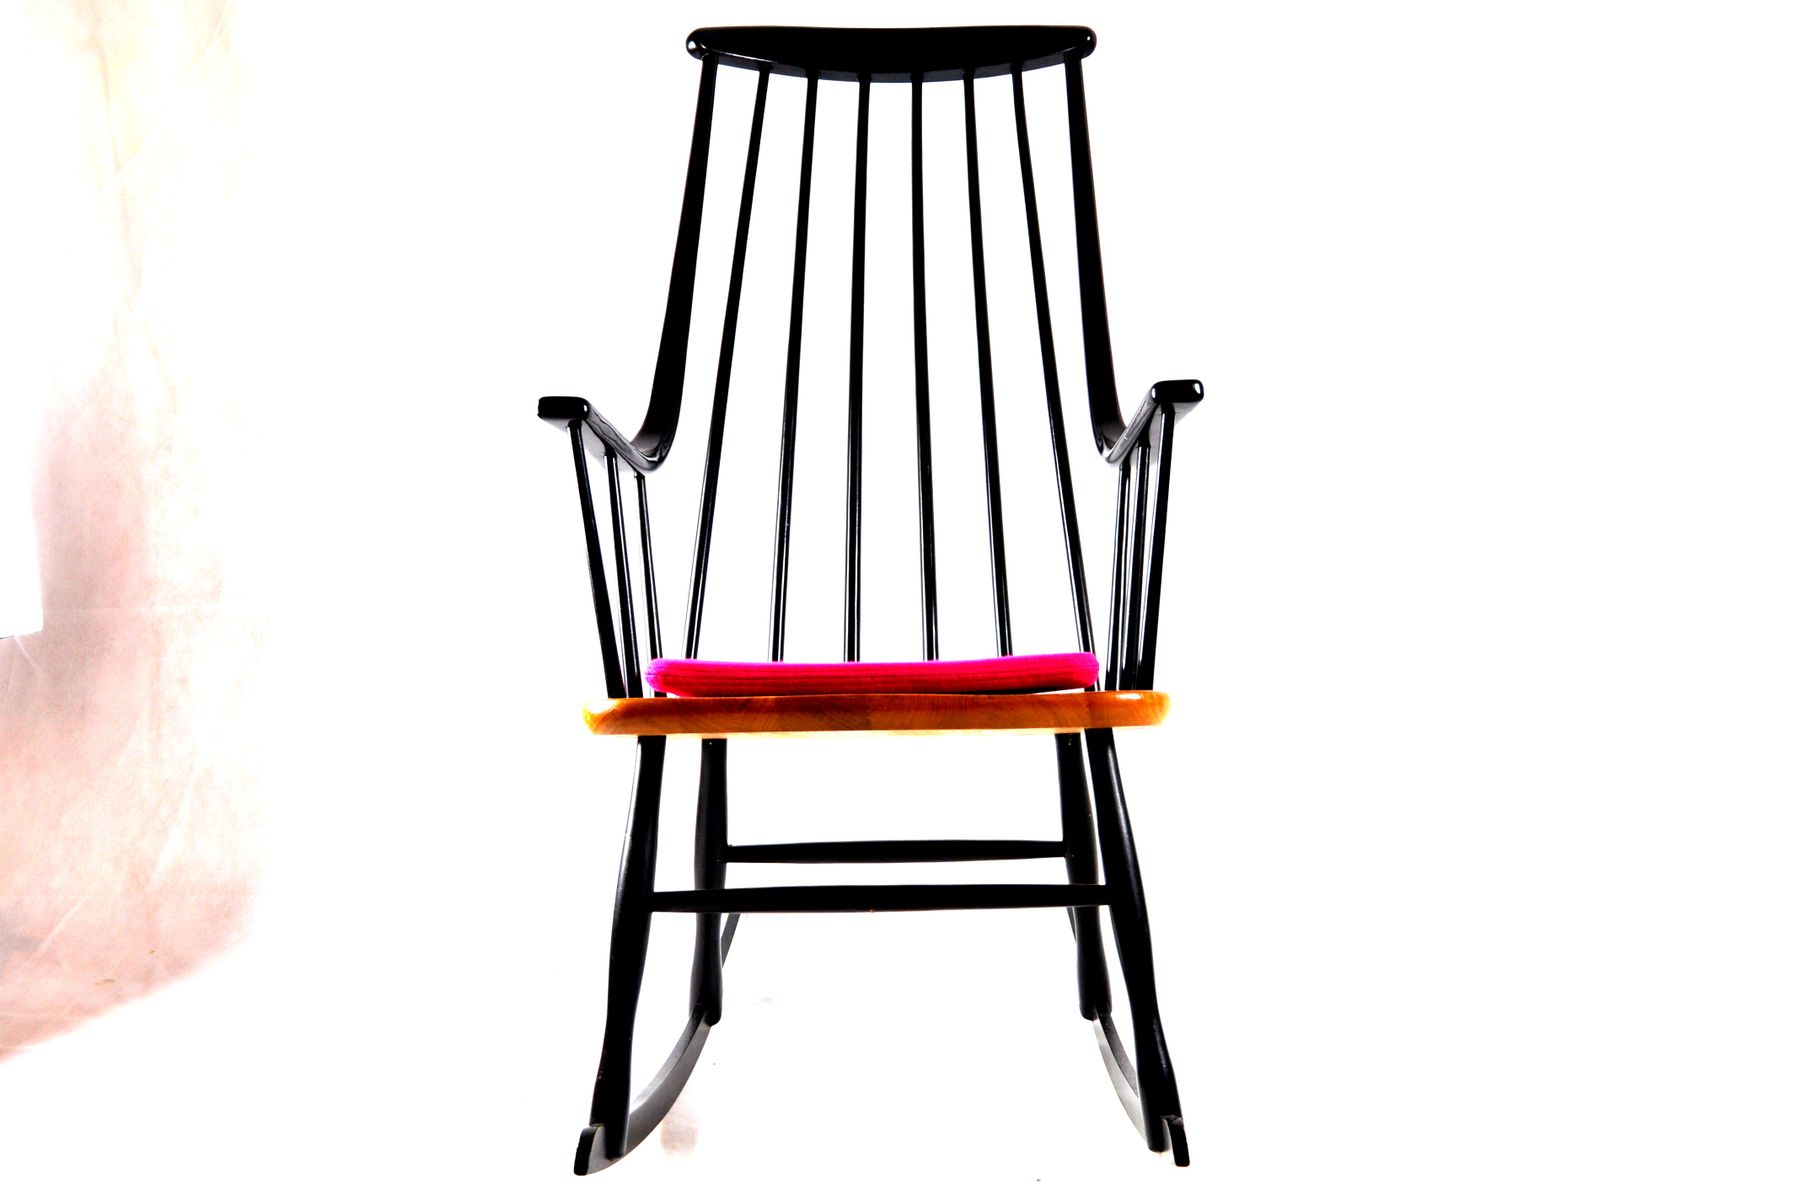 Rocking Chair by Cees Braakman for Pastoe for sale at Pamono